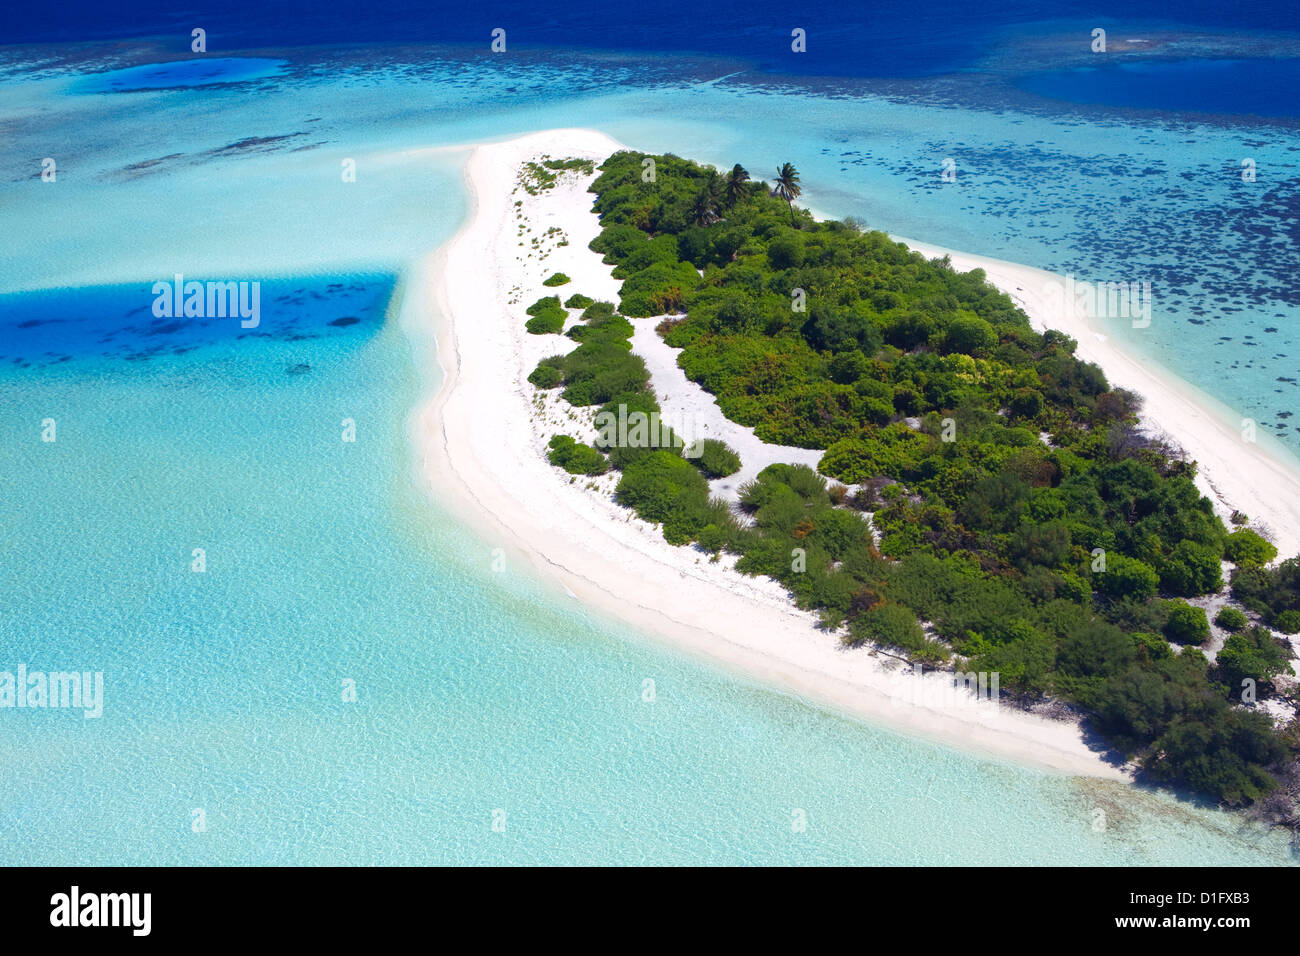 Aerial view of a desert  island, Maldives, Indian Ocean, Asia - Stock Image